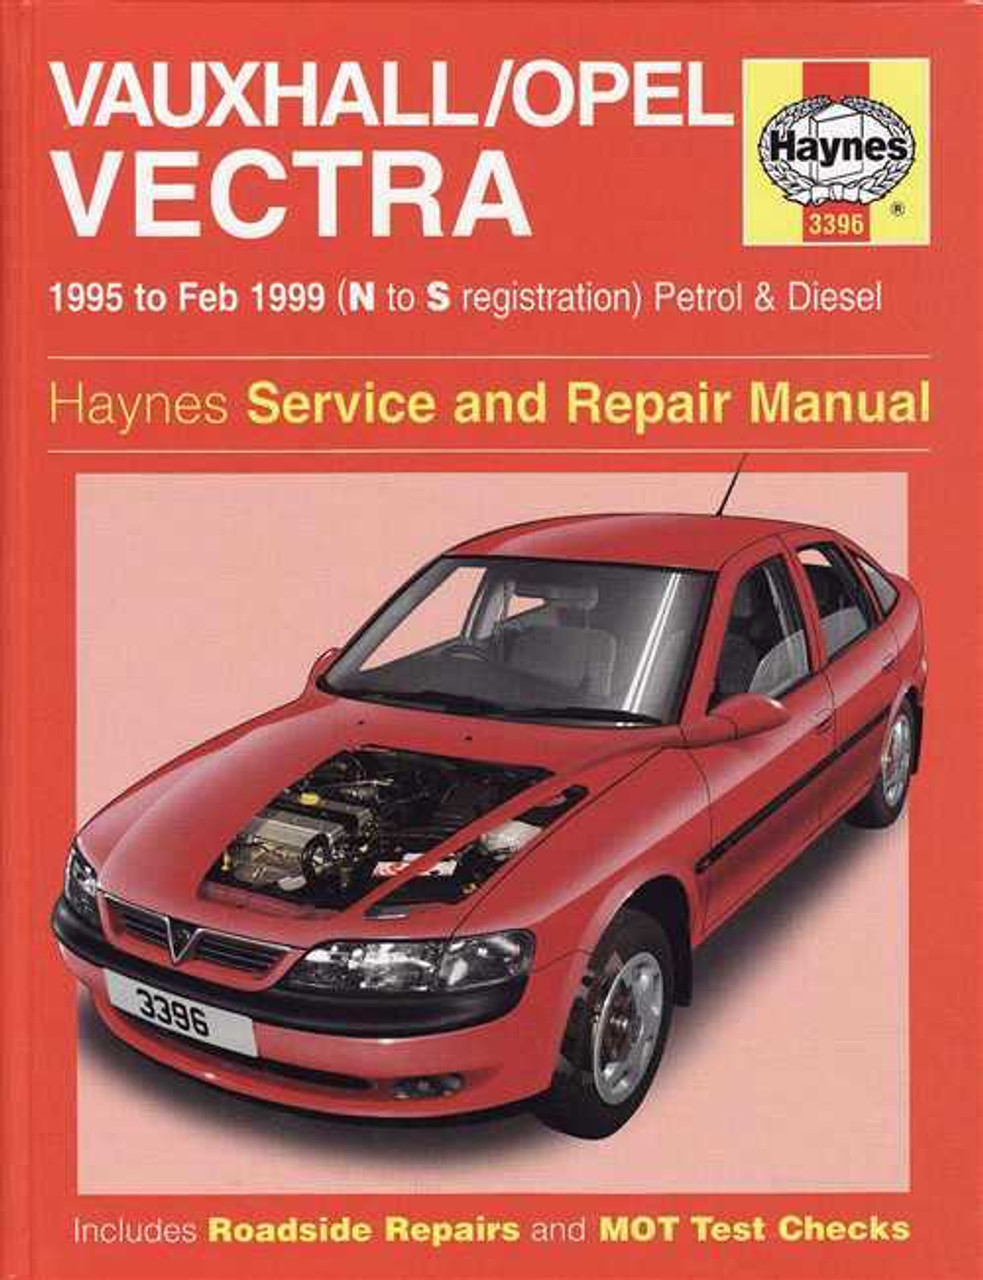 holden vectra 1995 1999 workshop manual rh automotobookshop com au holden vectra manual pdf holden vectra service manual